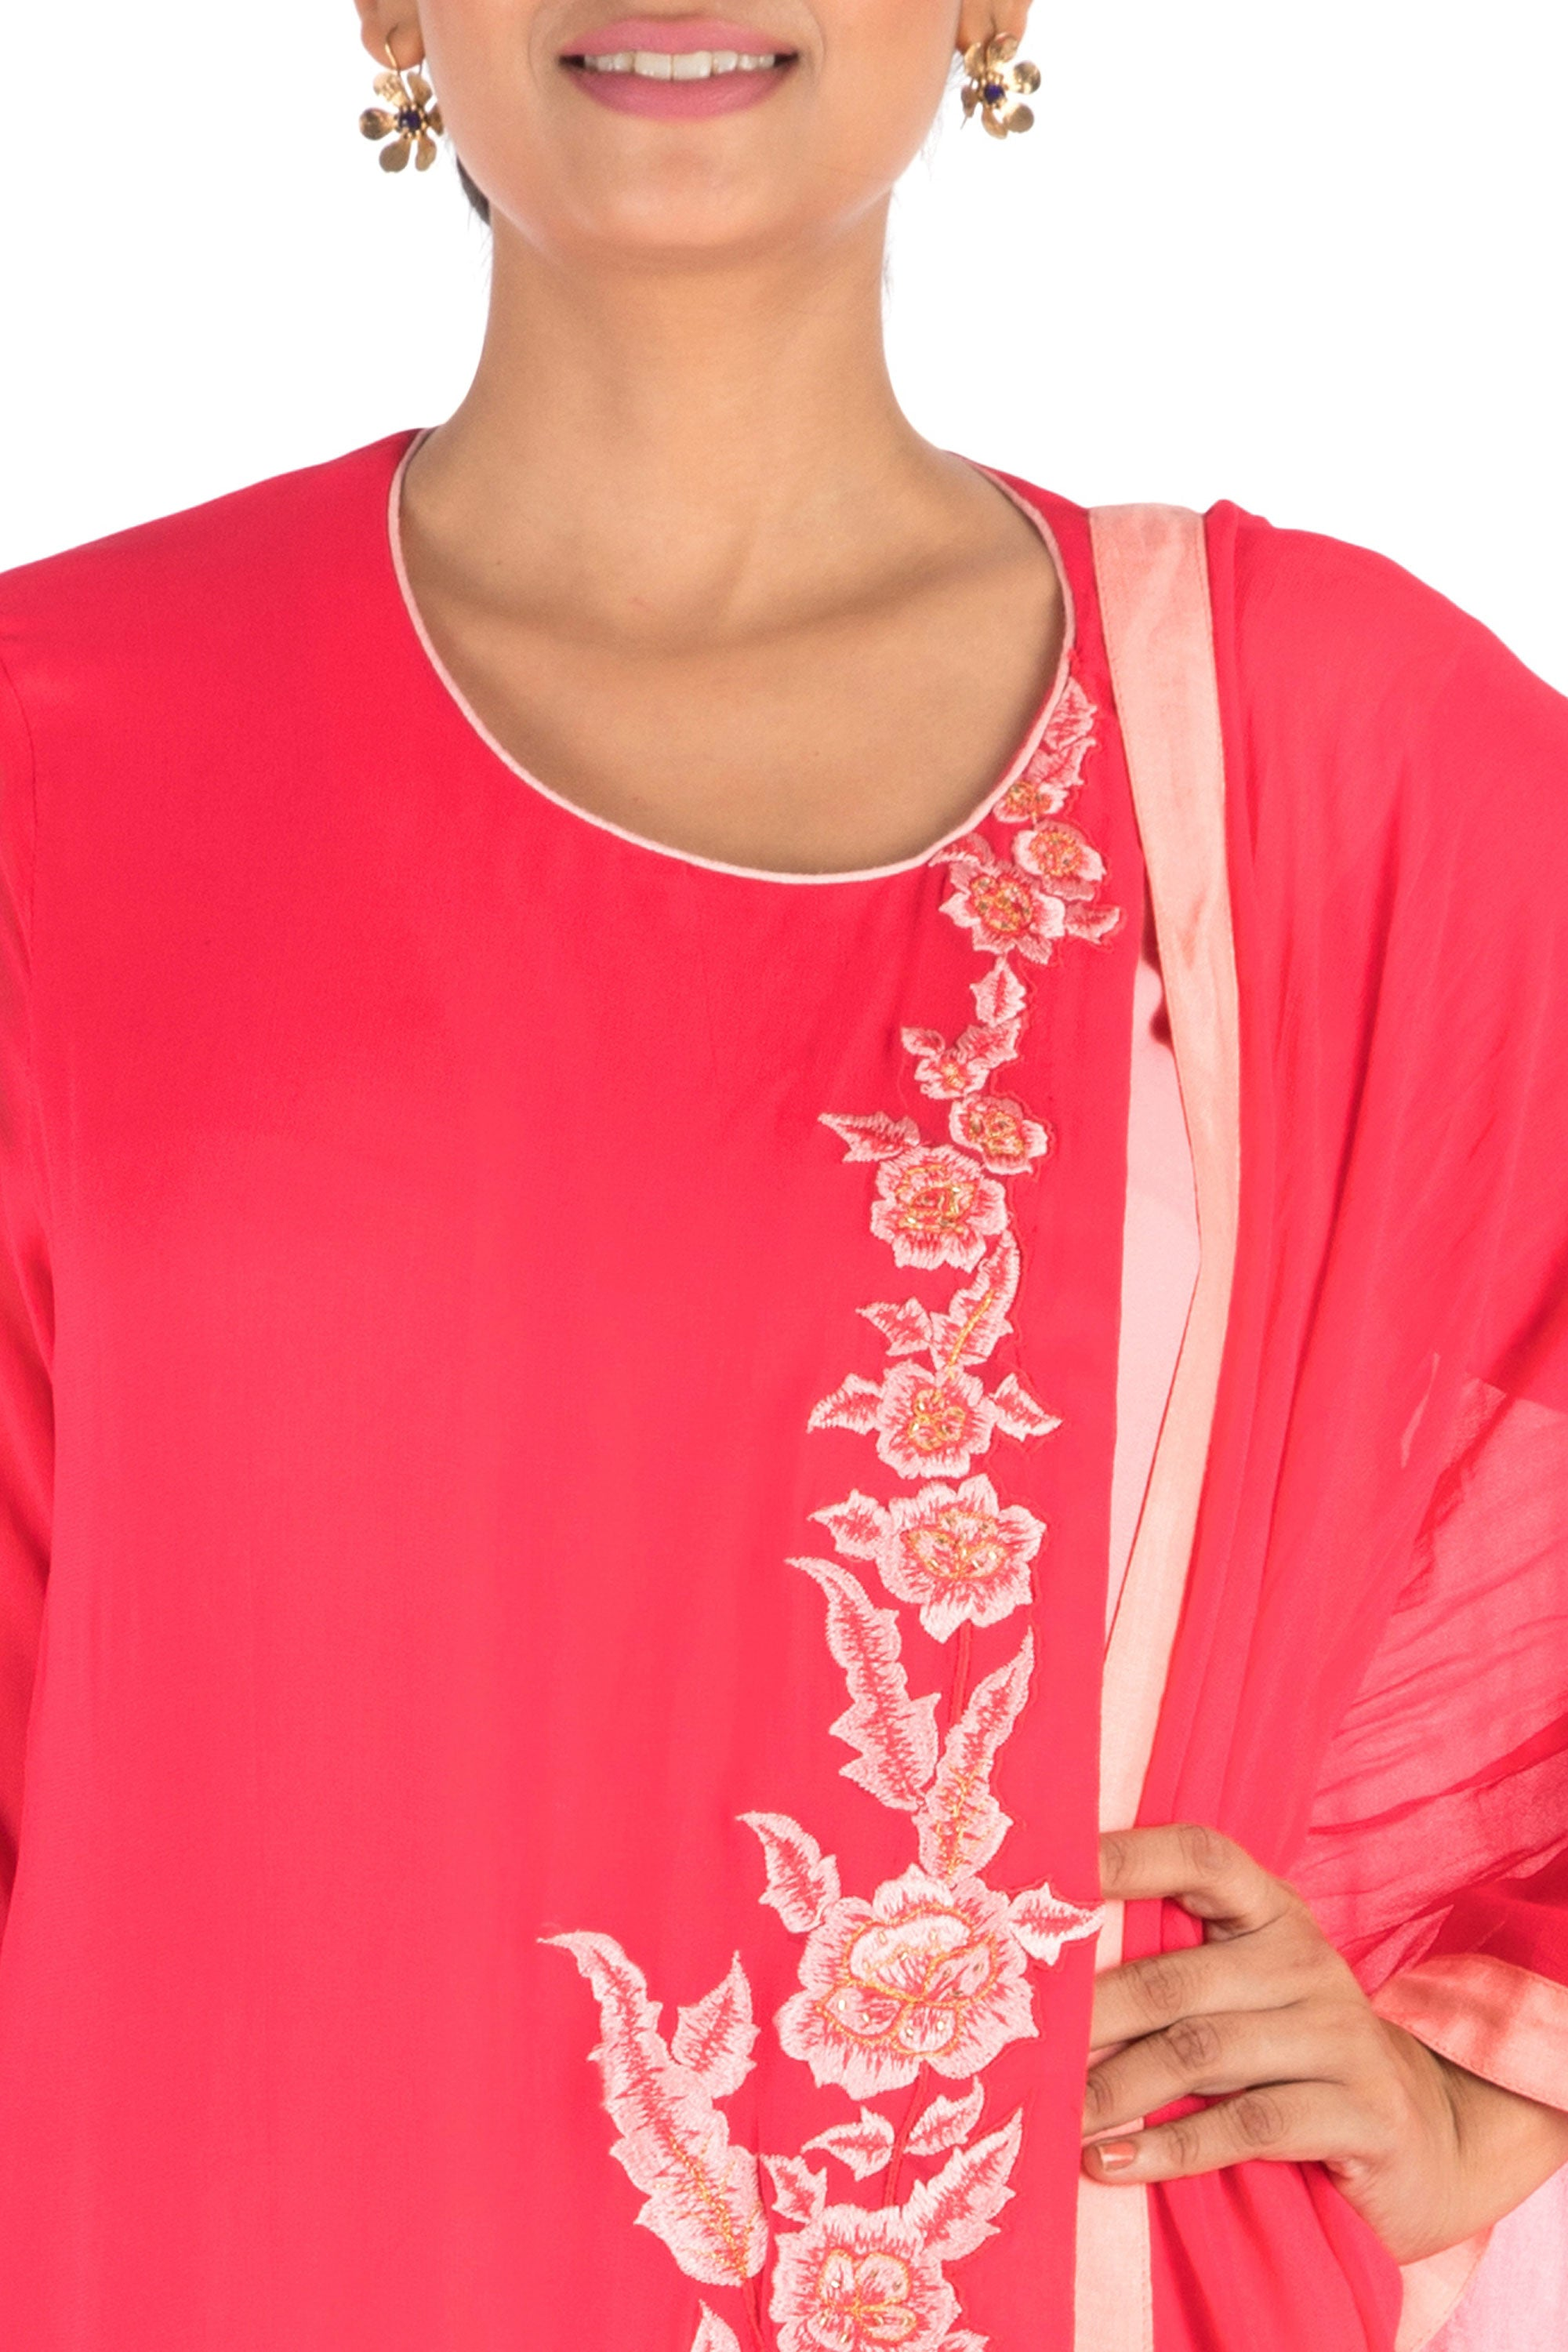 Overlapping Sweet Pink Suit Set With Dhoti Pants Closeup